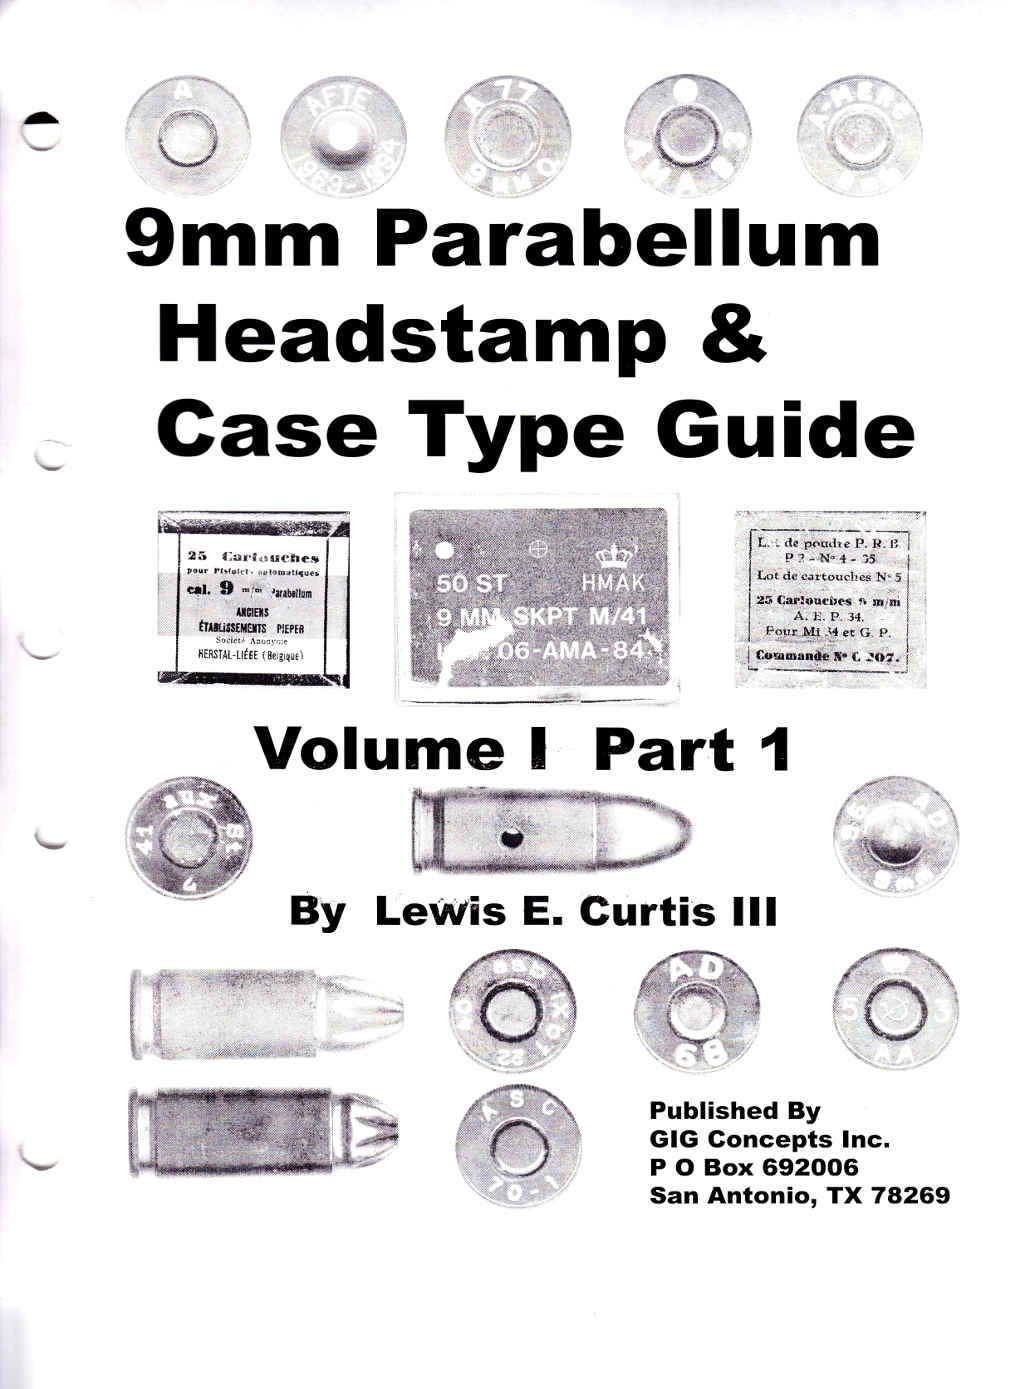 9 mm Para Headstamp & case type Guide Vol.1 Part 1